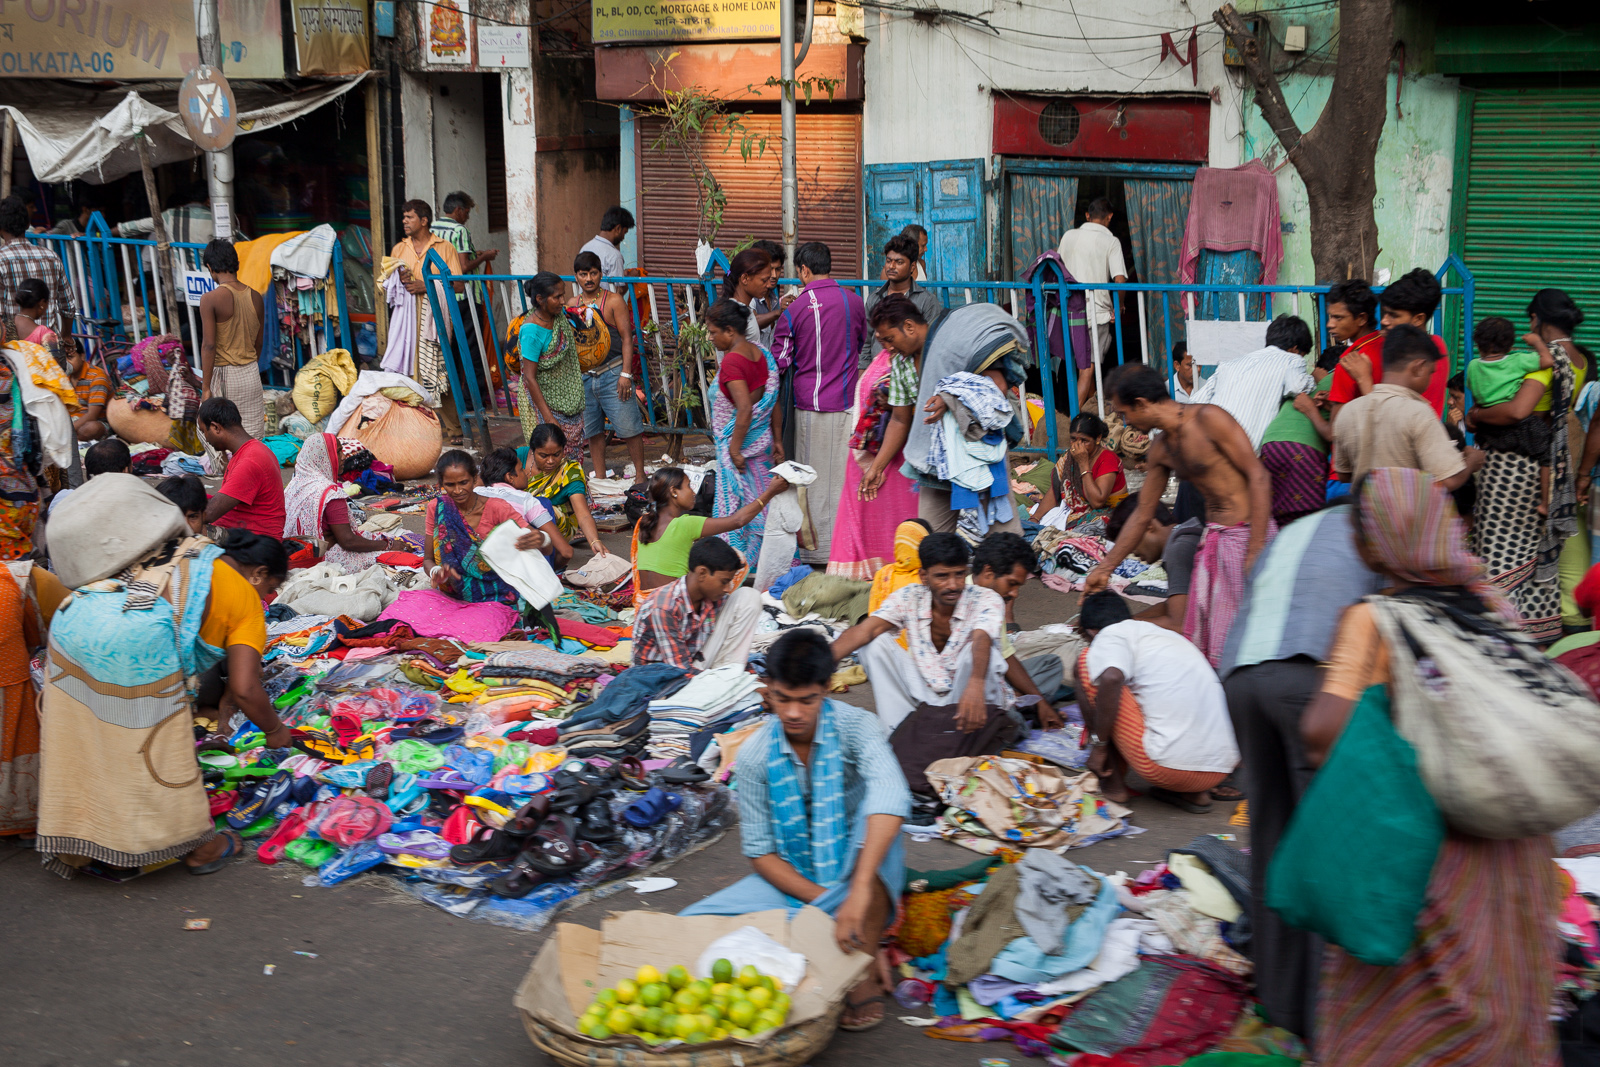 The haat (bazaar) on Chittaranjan Avenue